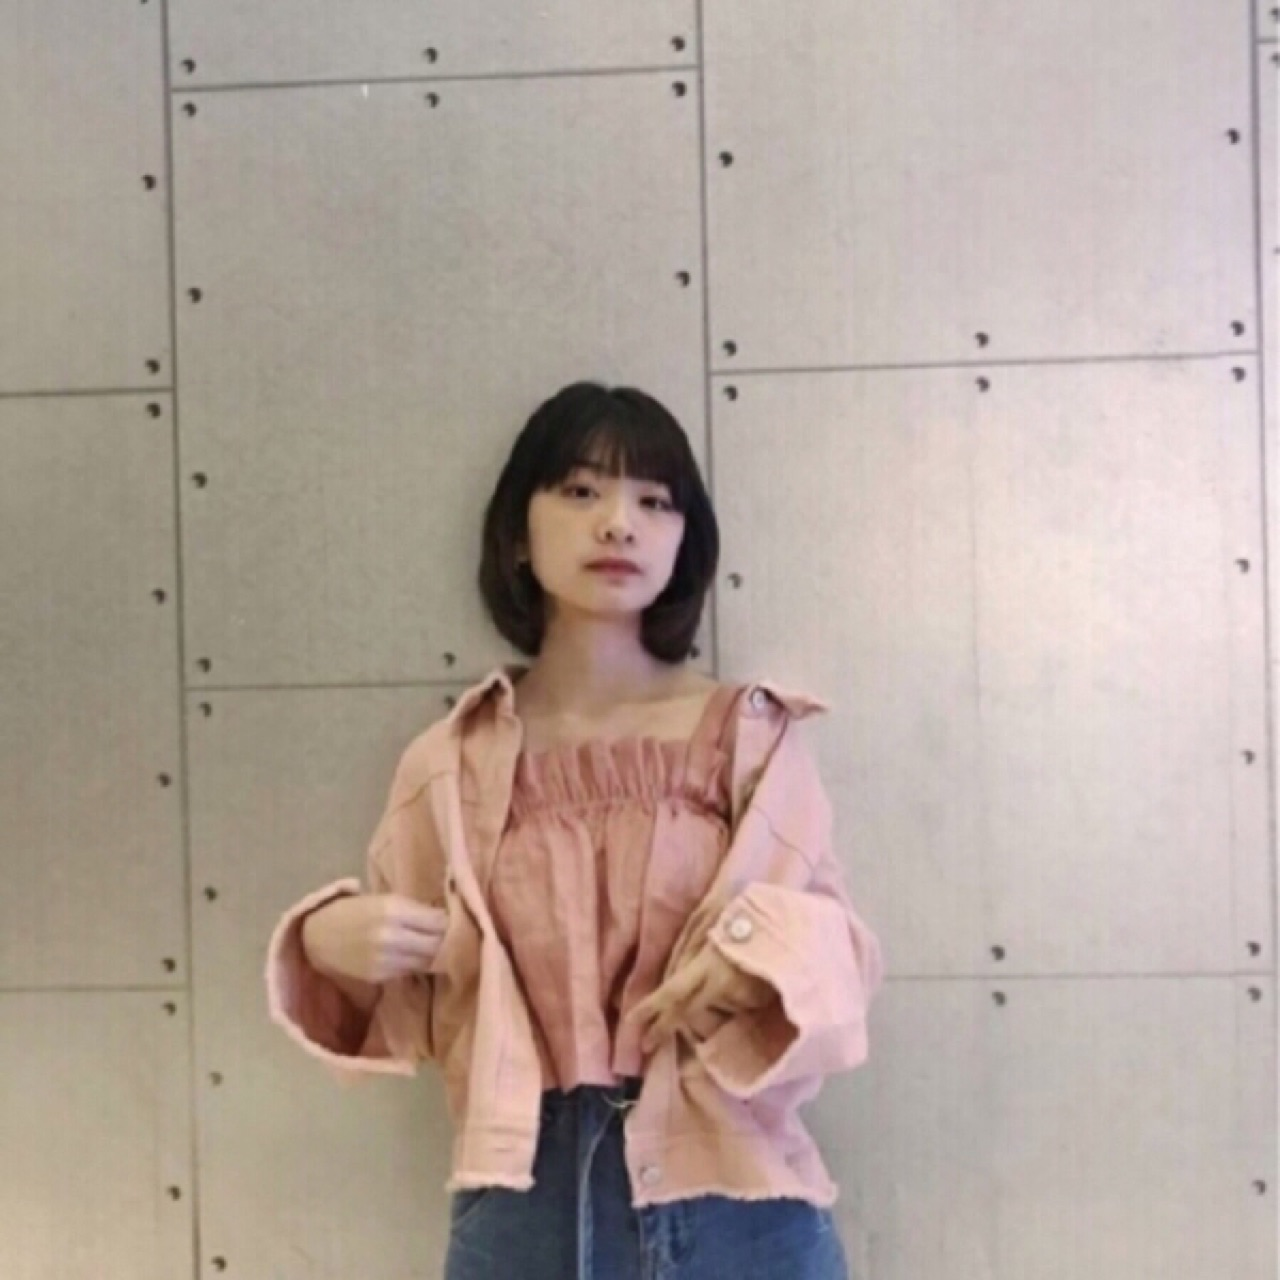 110d8fe2-a5b2-407a-bad1-82be8c688bd9